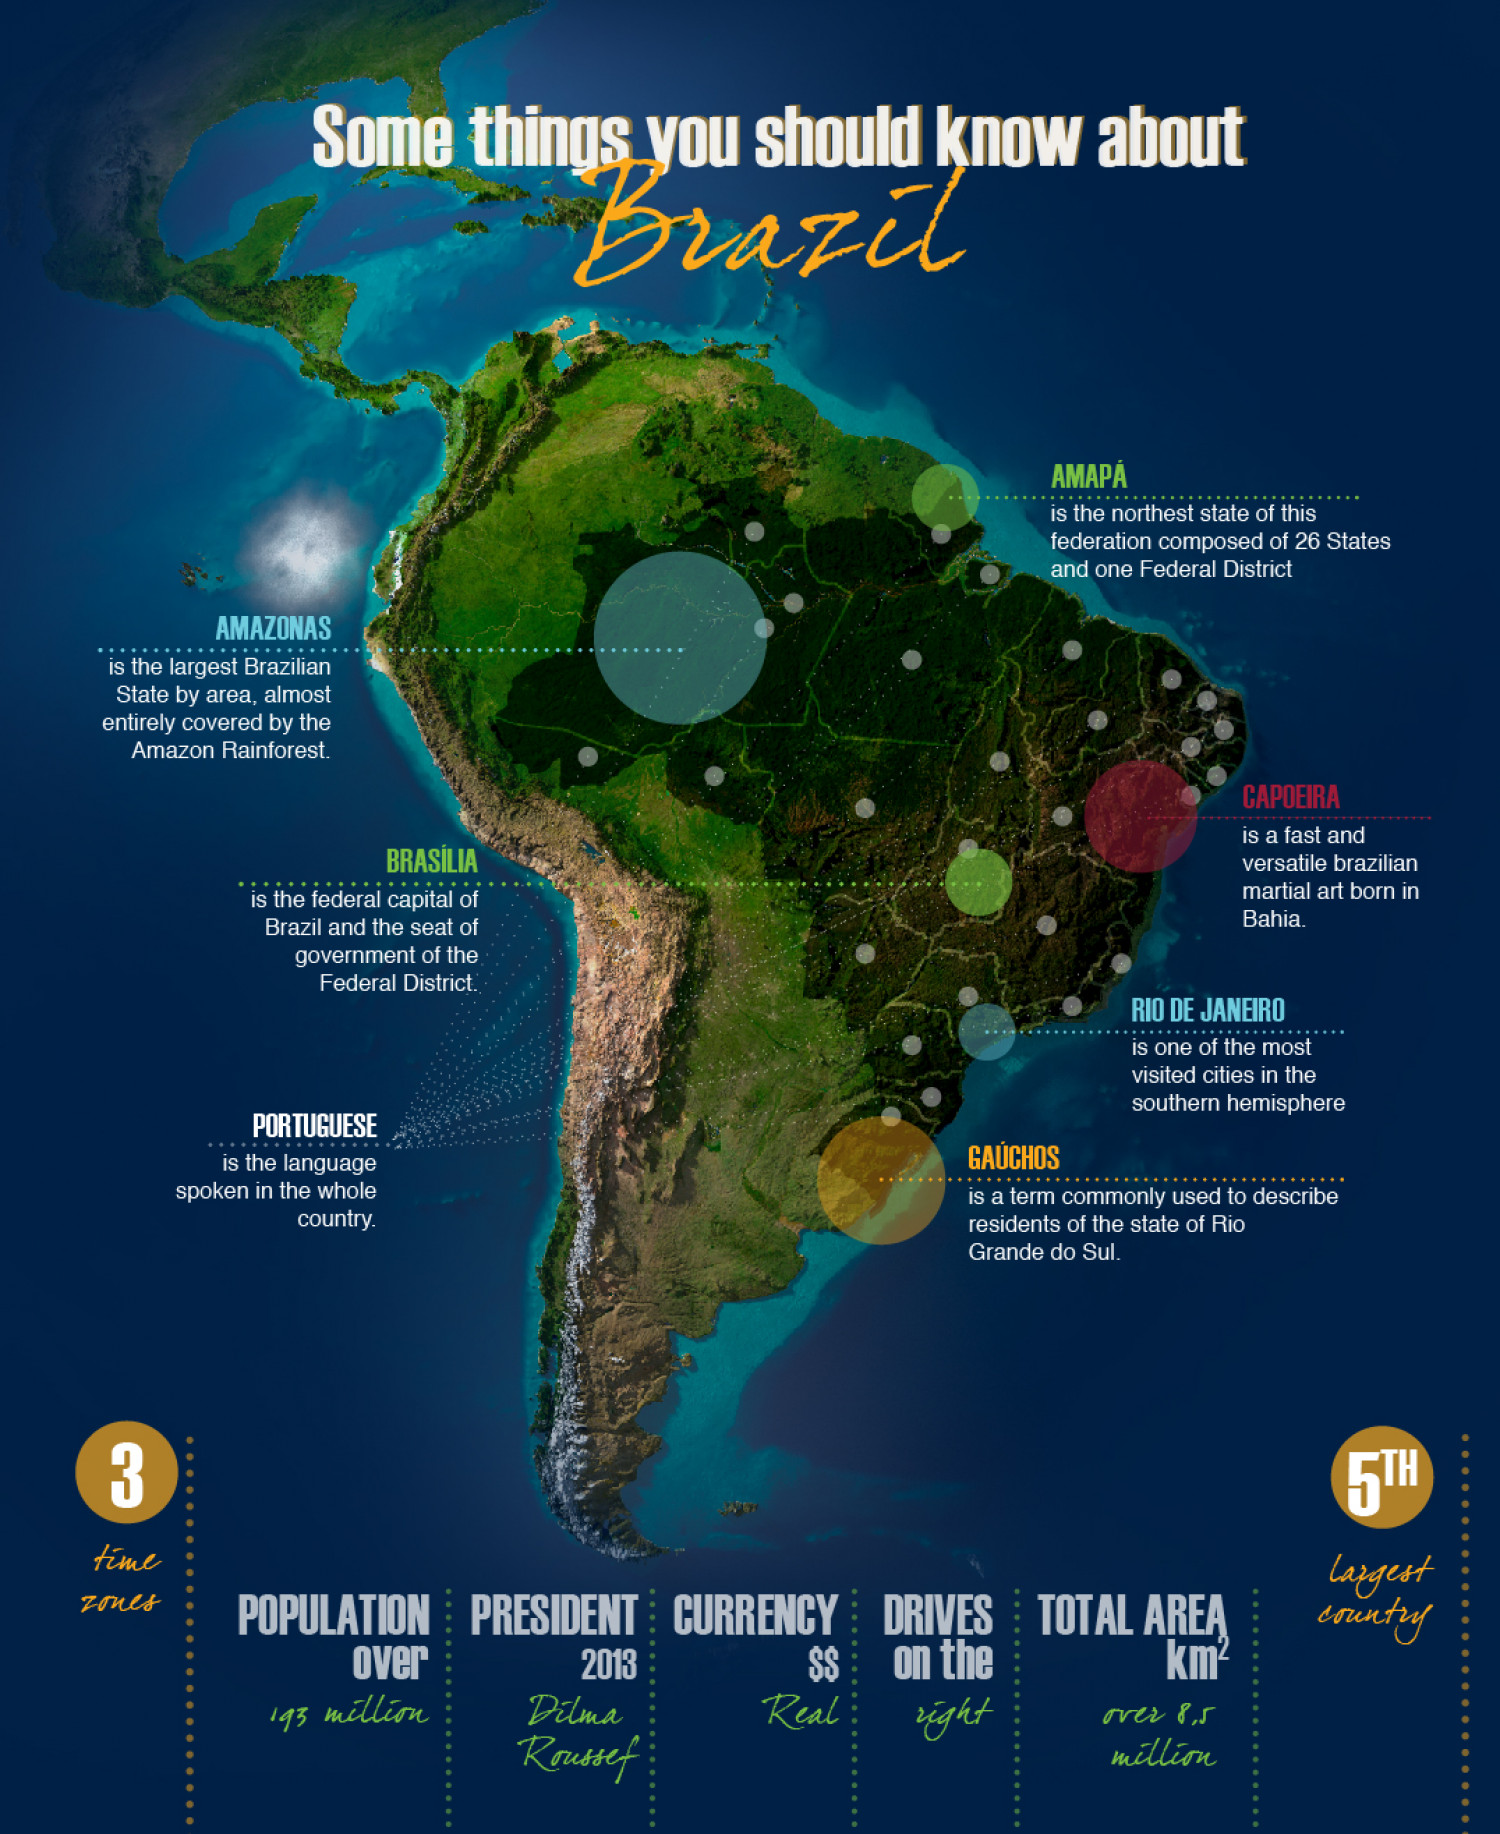 Some things you should know about Brazil Infographic